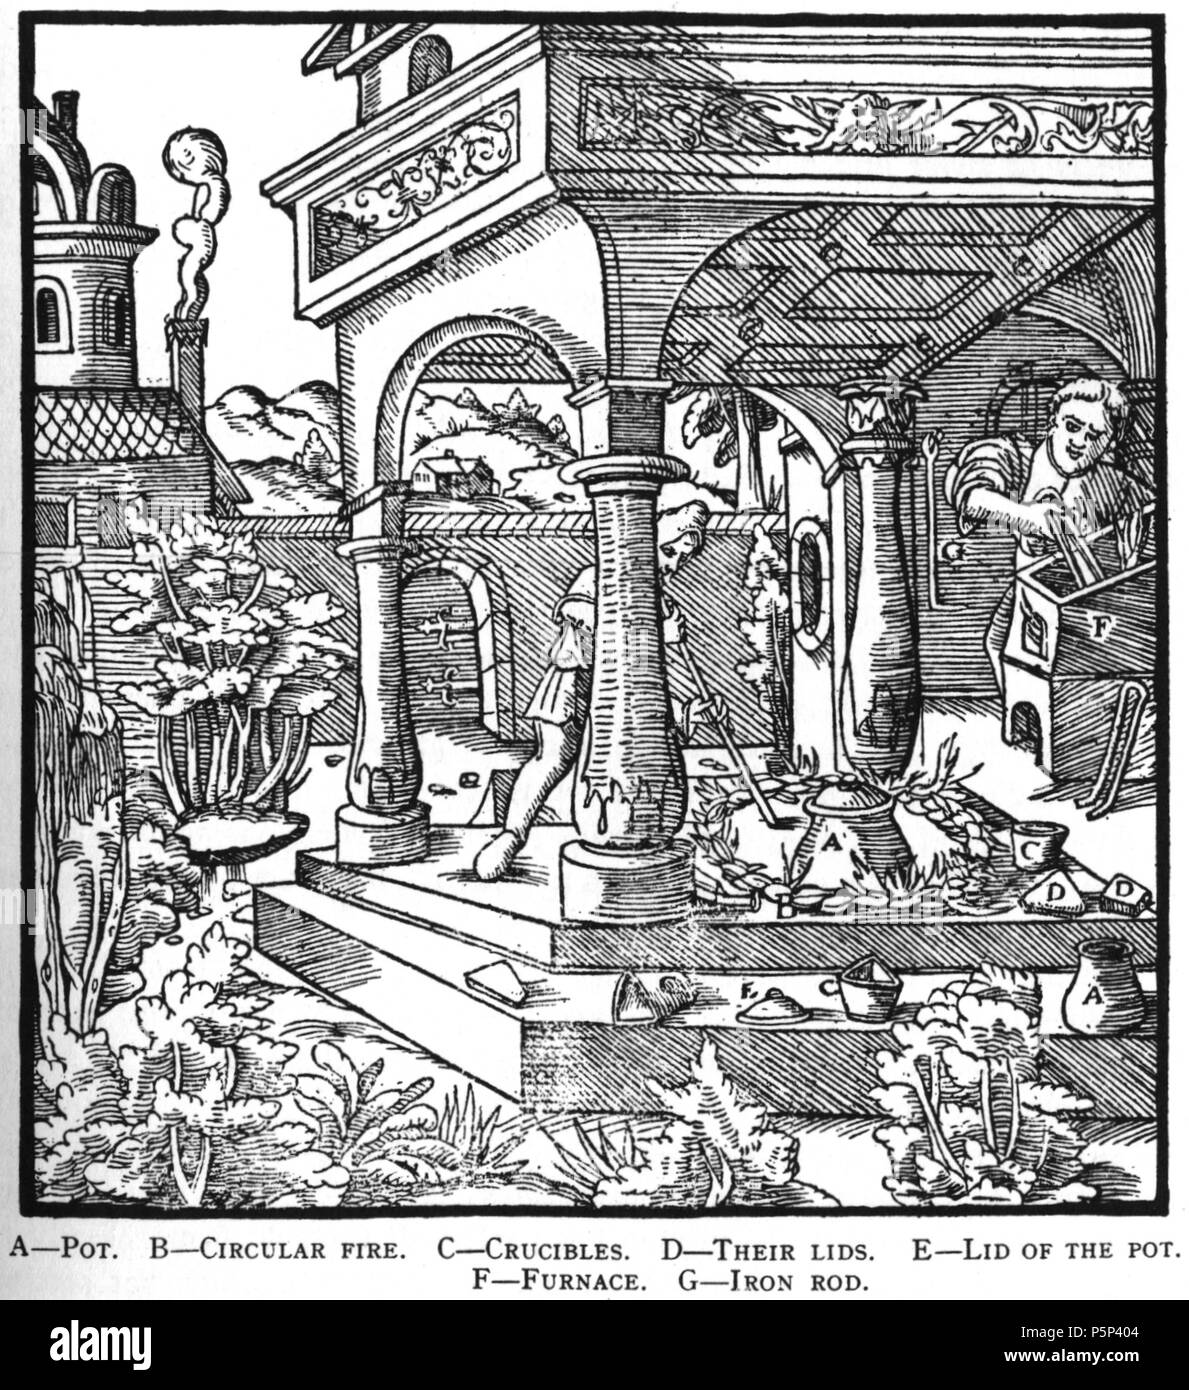 N/A. Woodcut illustration from De re metallica by Georgius Agricola. This is a 300dpi scan from the 1950 Dover edition of the 1913 Hoover translation of the 1556 reference. The Dover edition has slightly smaller size prints than the Hoover (which is a rare book). The woodcuts were recreated for the 1913 printing. Filenames (except for the title page) indicate the chapter (2, 3, 5, etc.) followed by the sequential number of the illustration. 2 May 2005, 06:04:20. TCO (talk) 222 Book10-3 - Stock Image